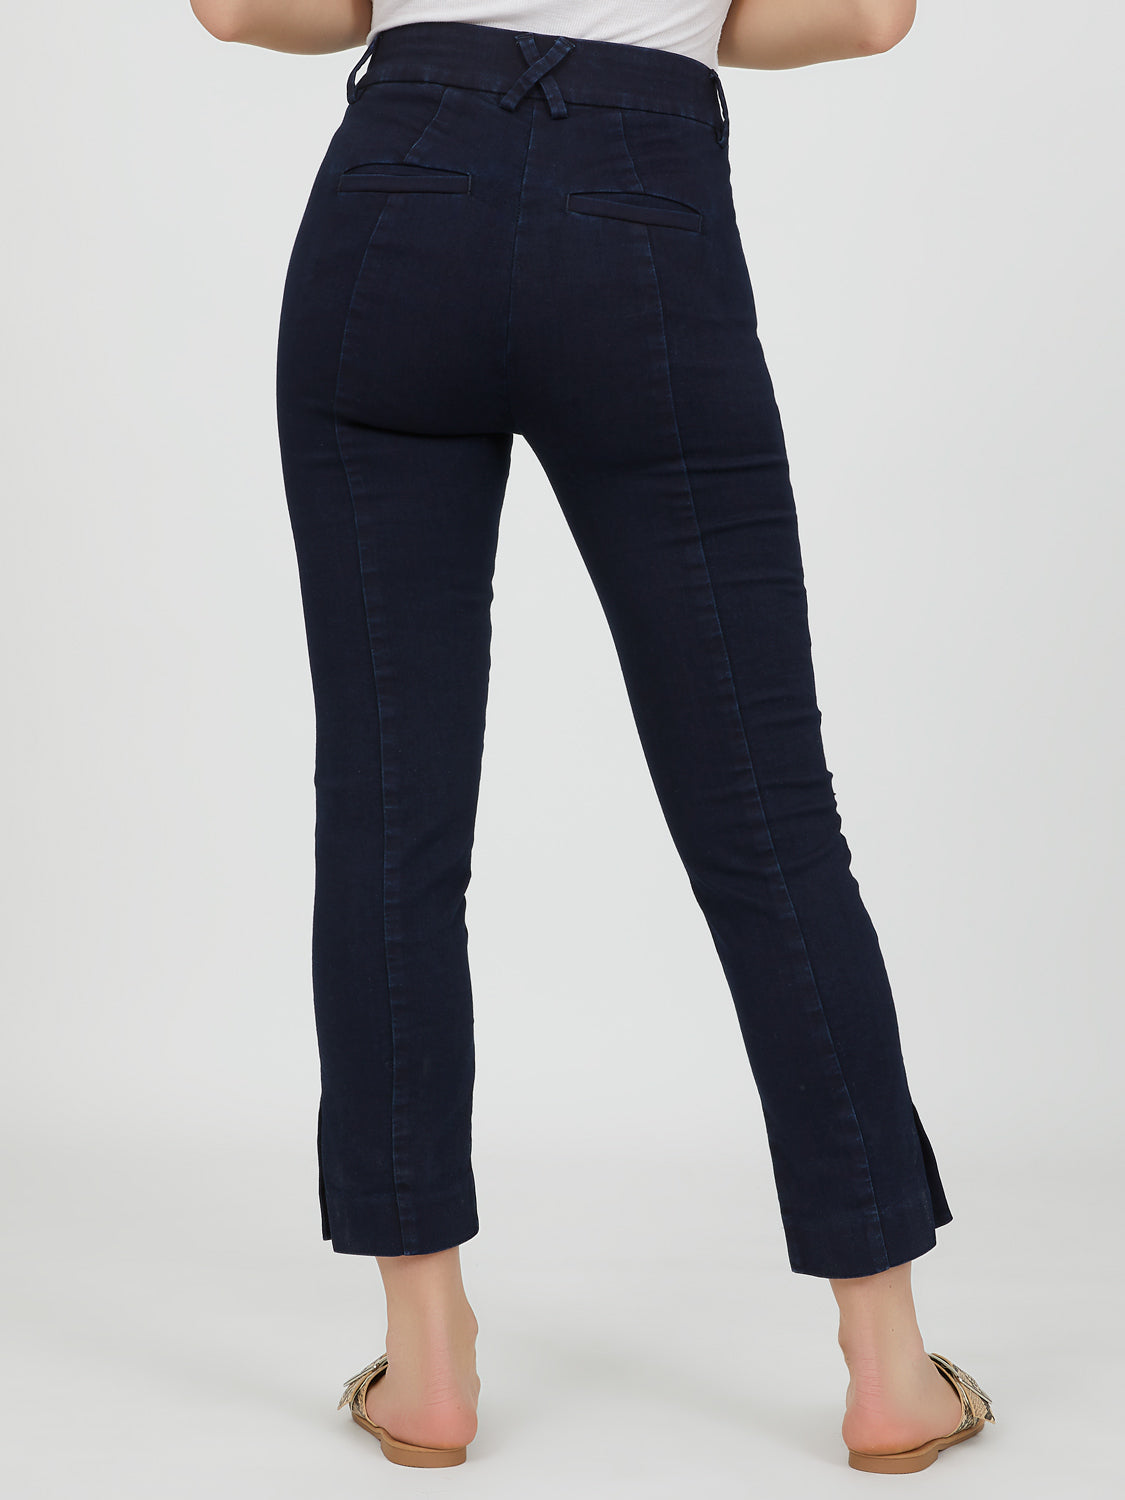 High Rise Denim Capri Pant